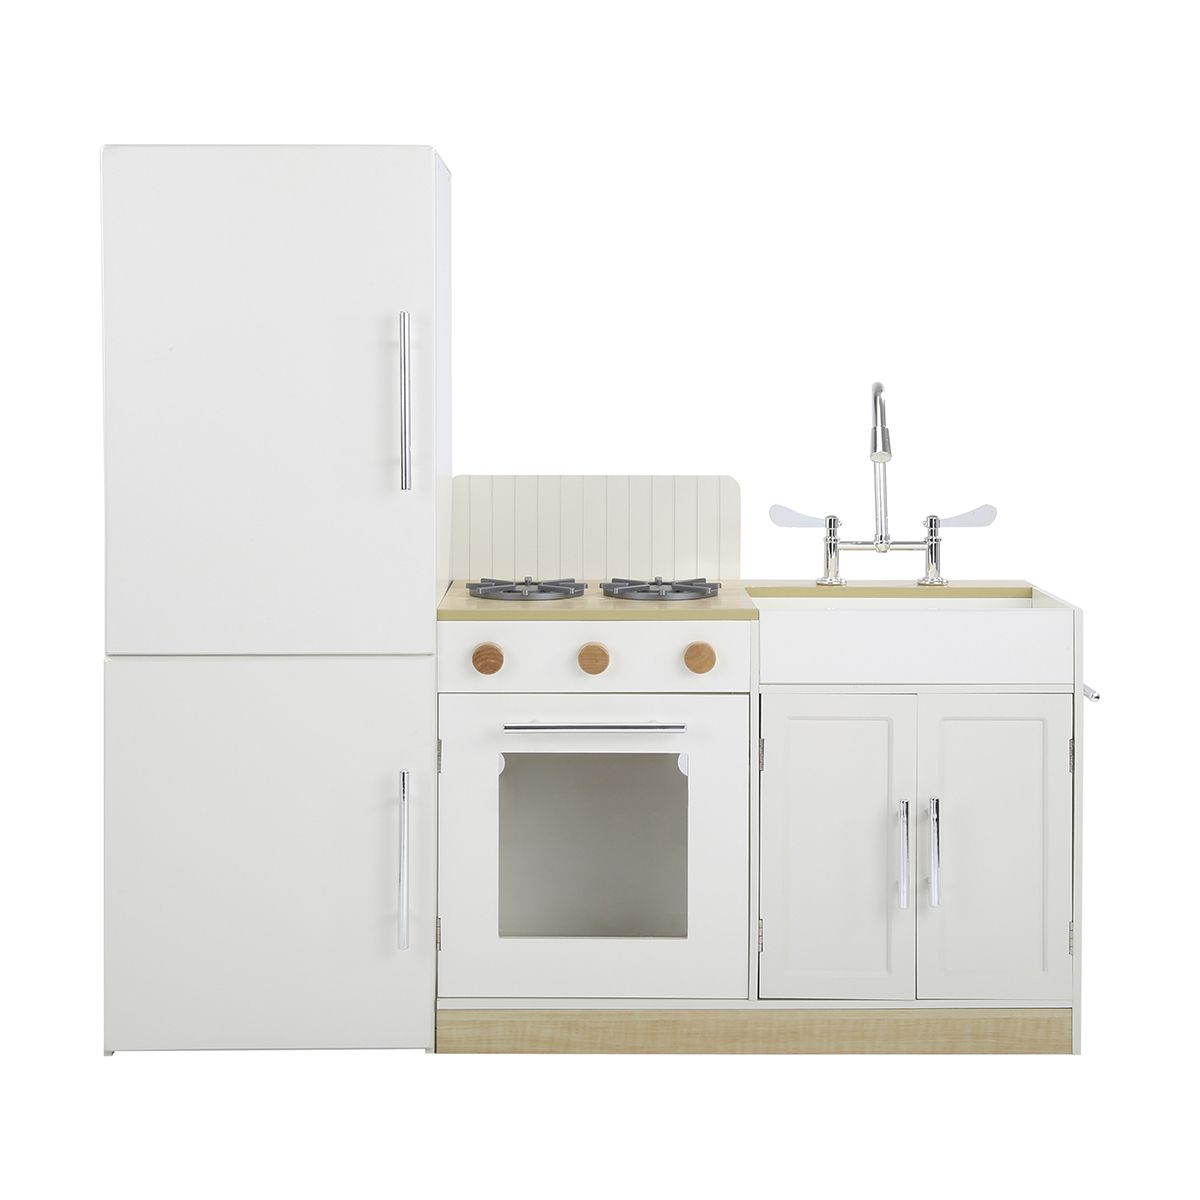 Deluxe Wooden Kitchen Playset | KmartNZ